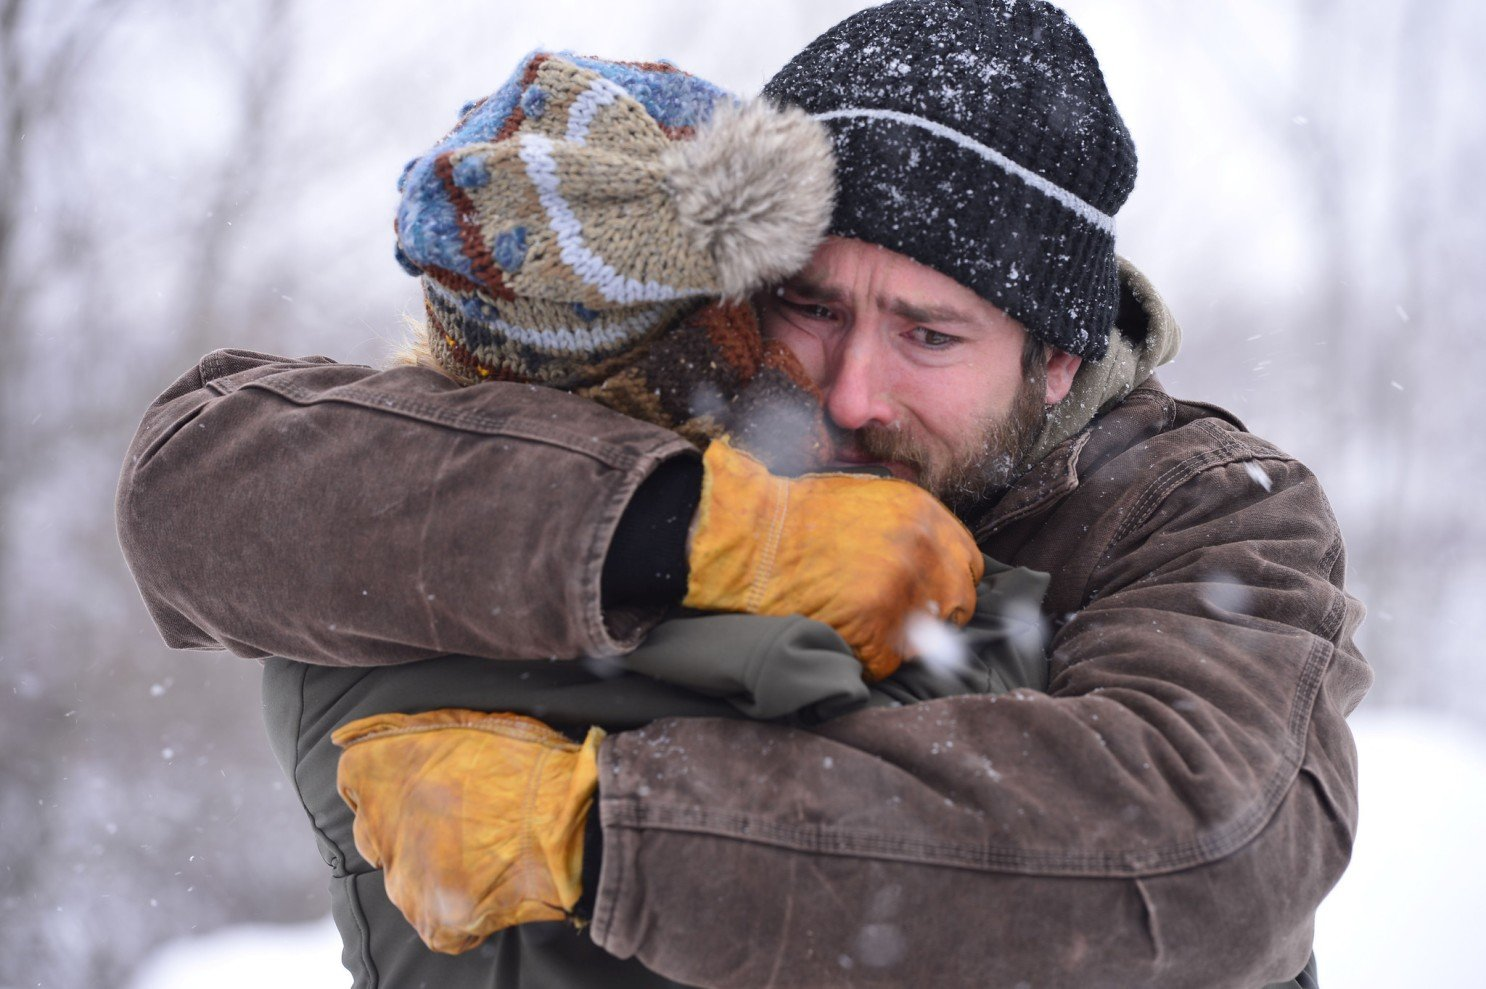 Cannes Film Festival 2014: The Captive Review